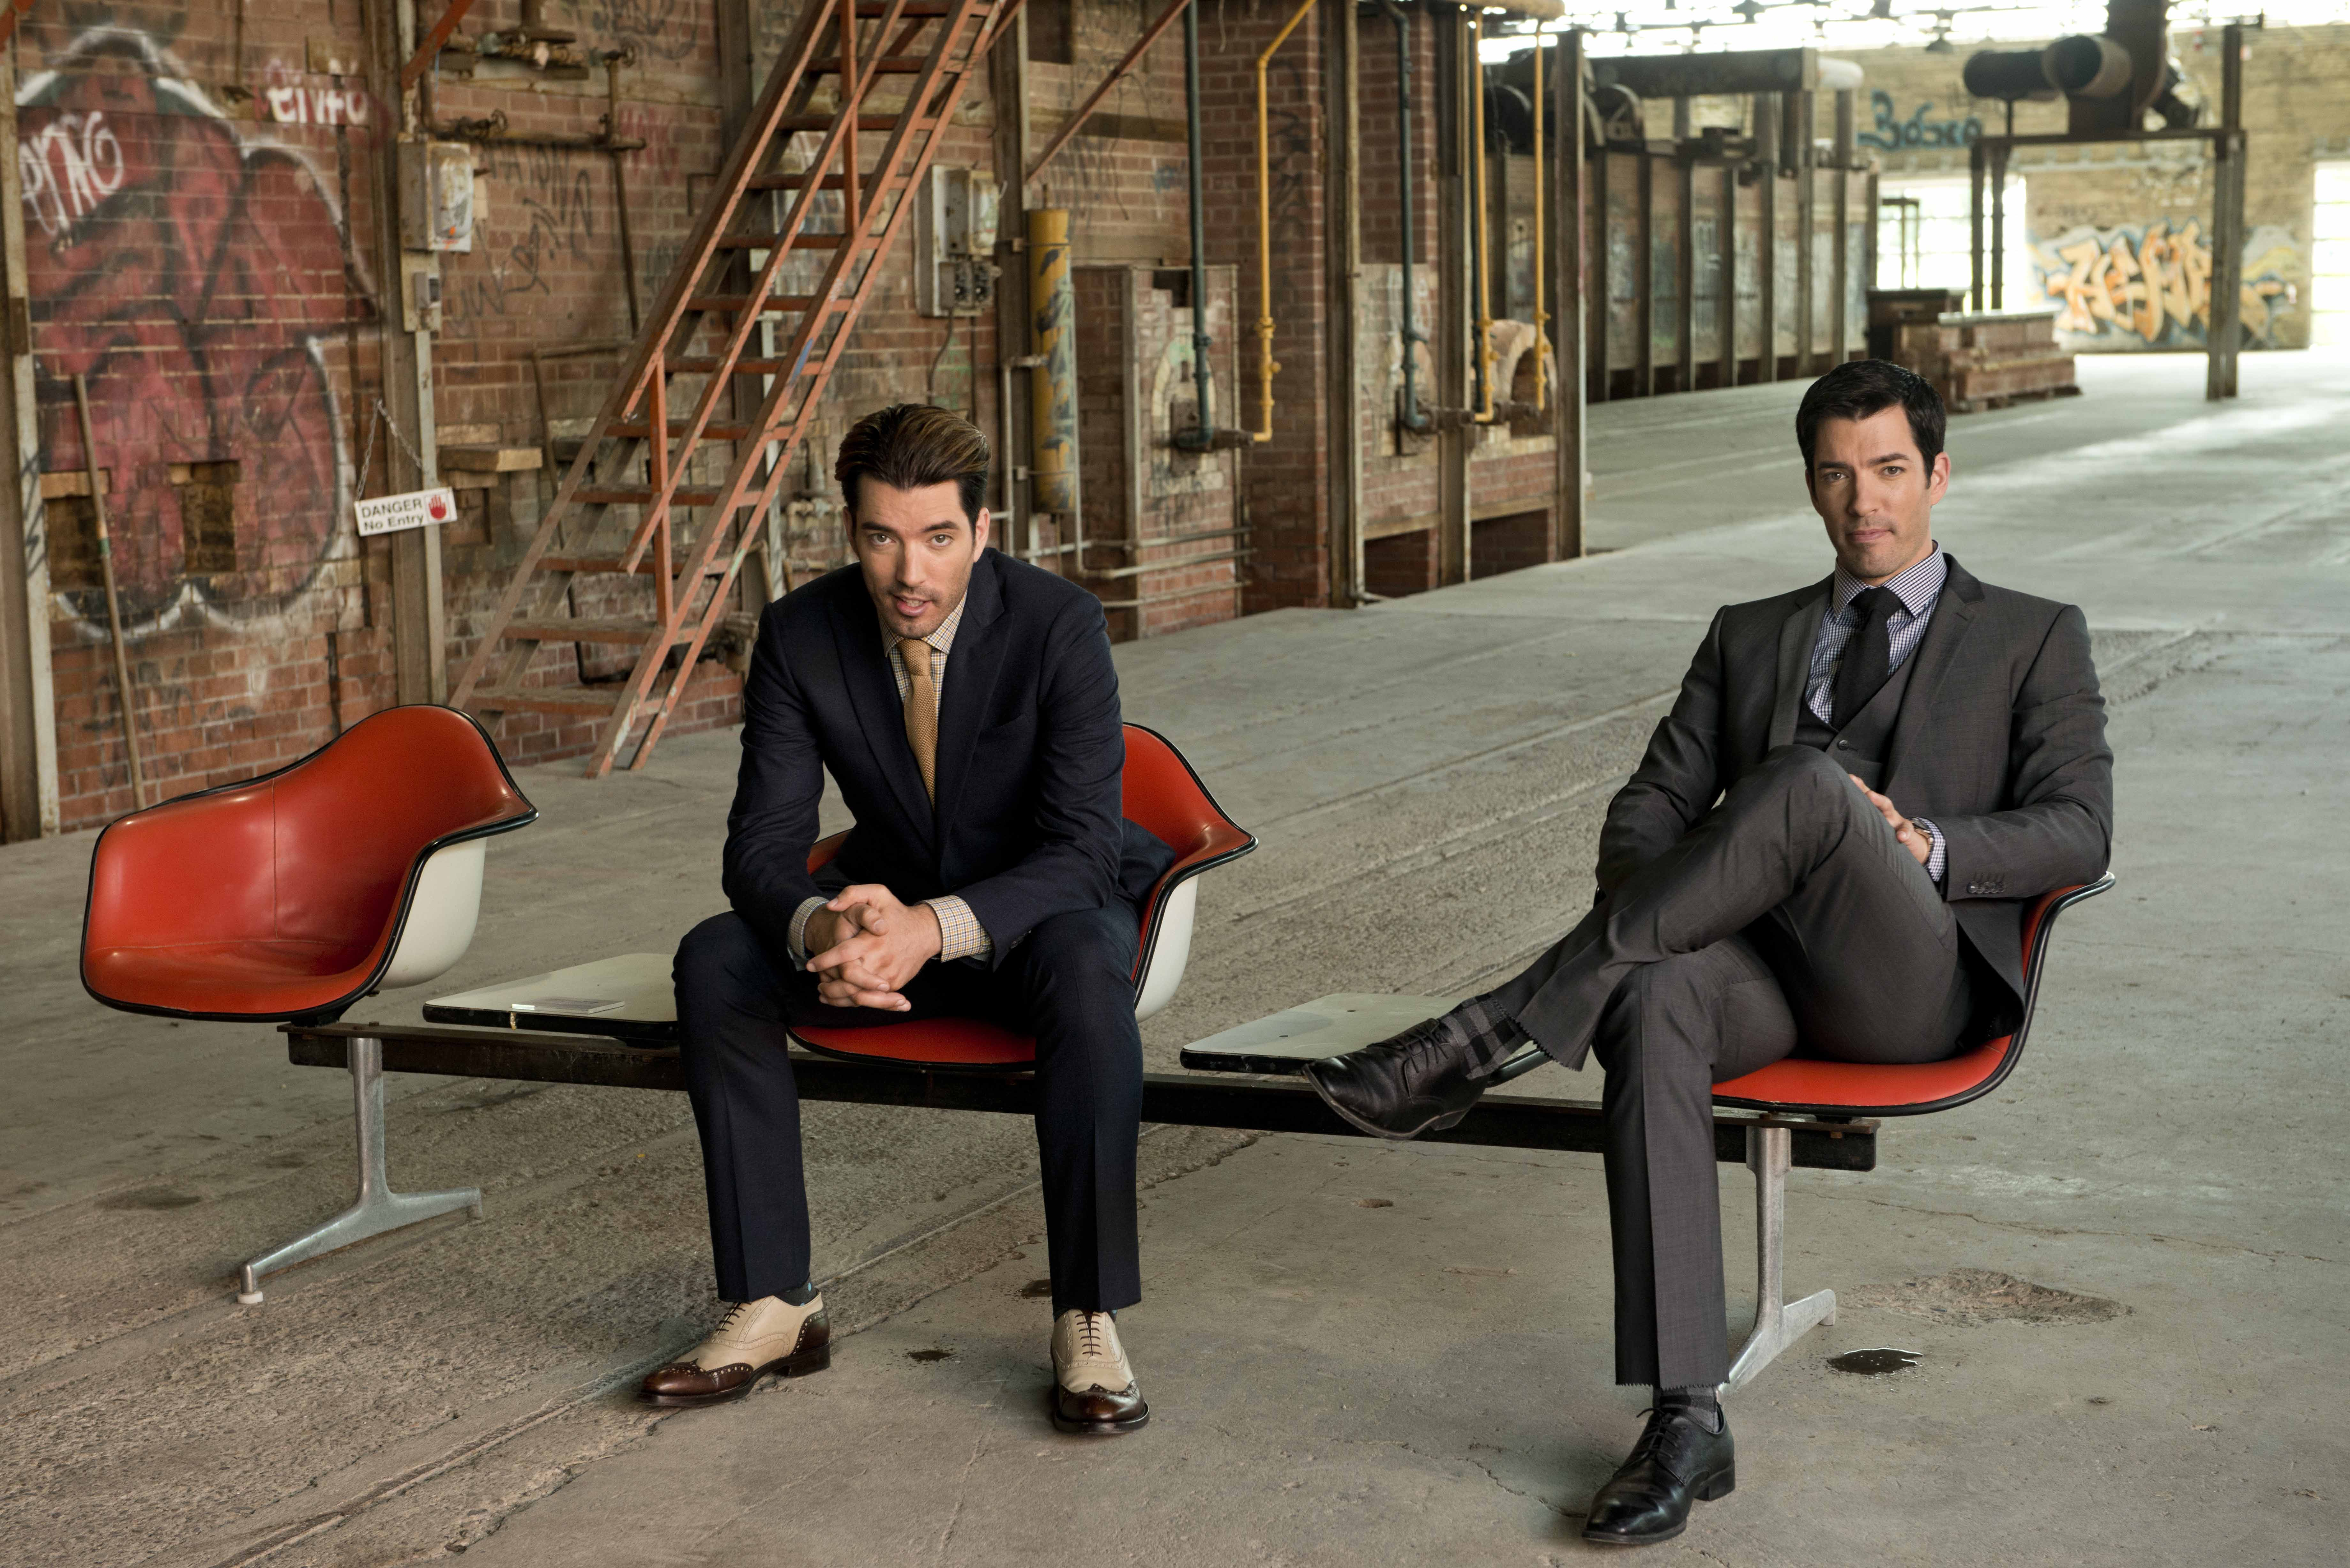 Property Brothers, HGTV interview by Michele Elyzabeth - LATF USA